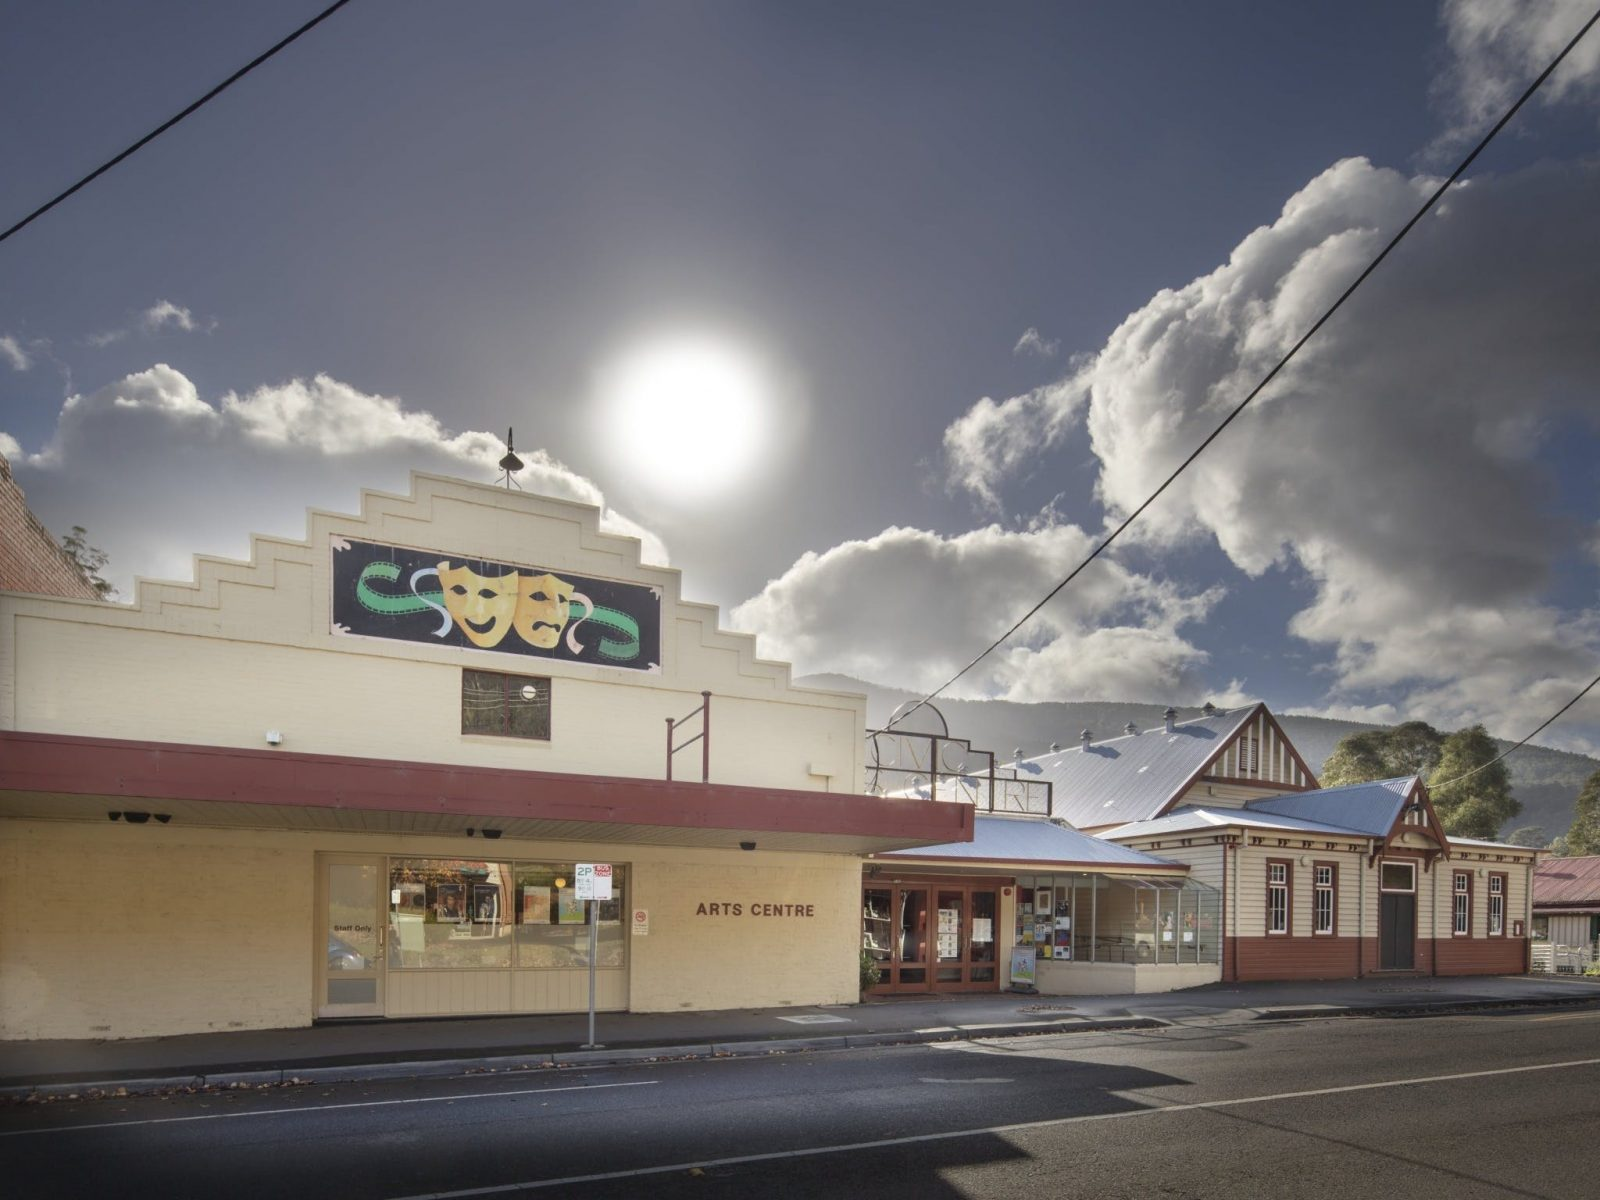 The front of the Arts Centre, Warburton